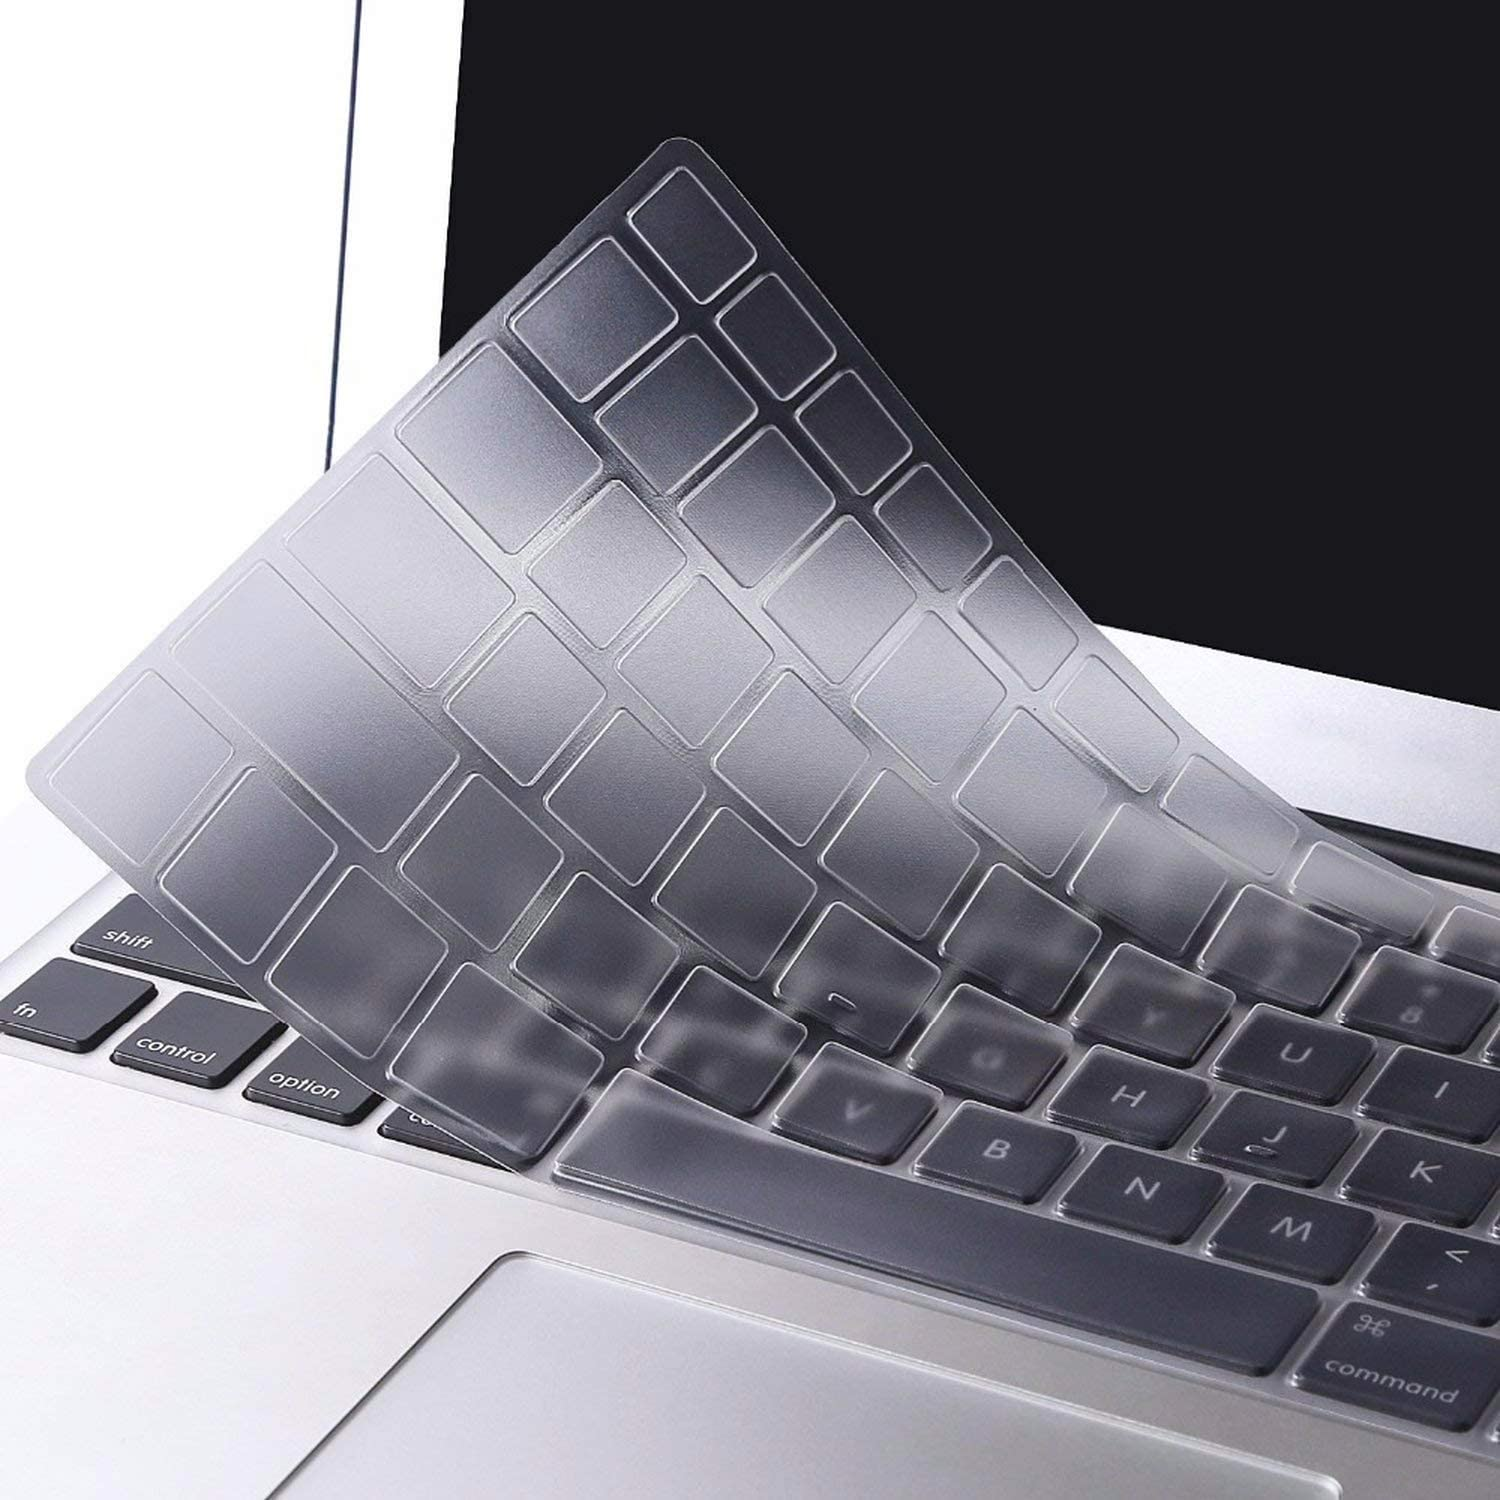 TPU Transparent Clear Keyboard Cover Skin Sticker for MacBook Air Pro Retina 11 12 13 15 Inch US Version A1932 A1466,Pro 15 Cd ROM A1286